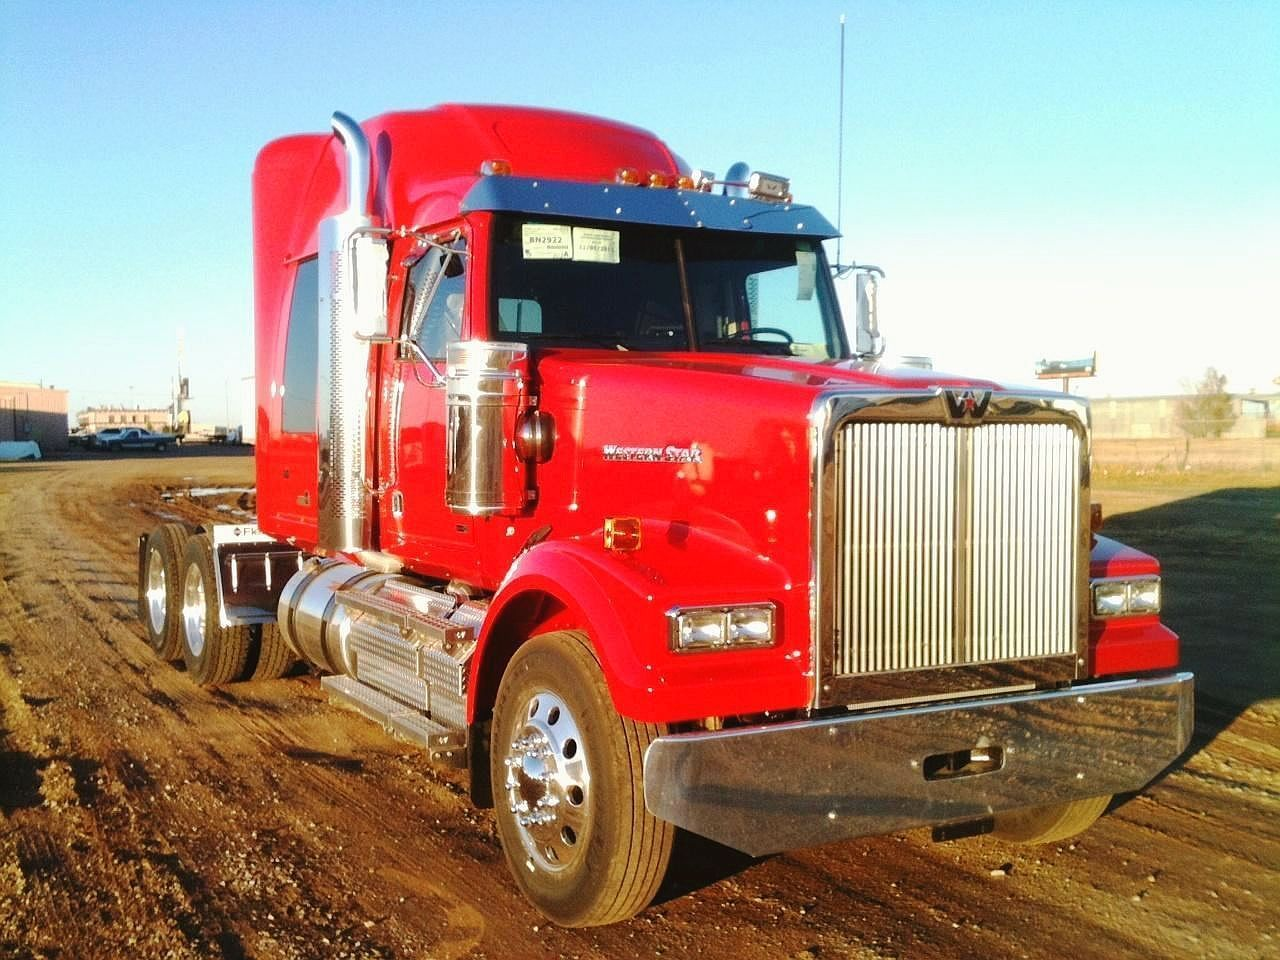 Western Star Trucks Http Www Nexttruckonline Com Trucks For Sale